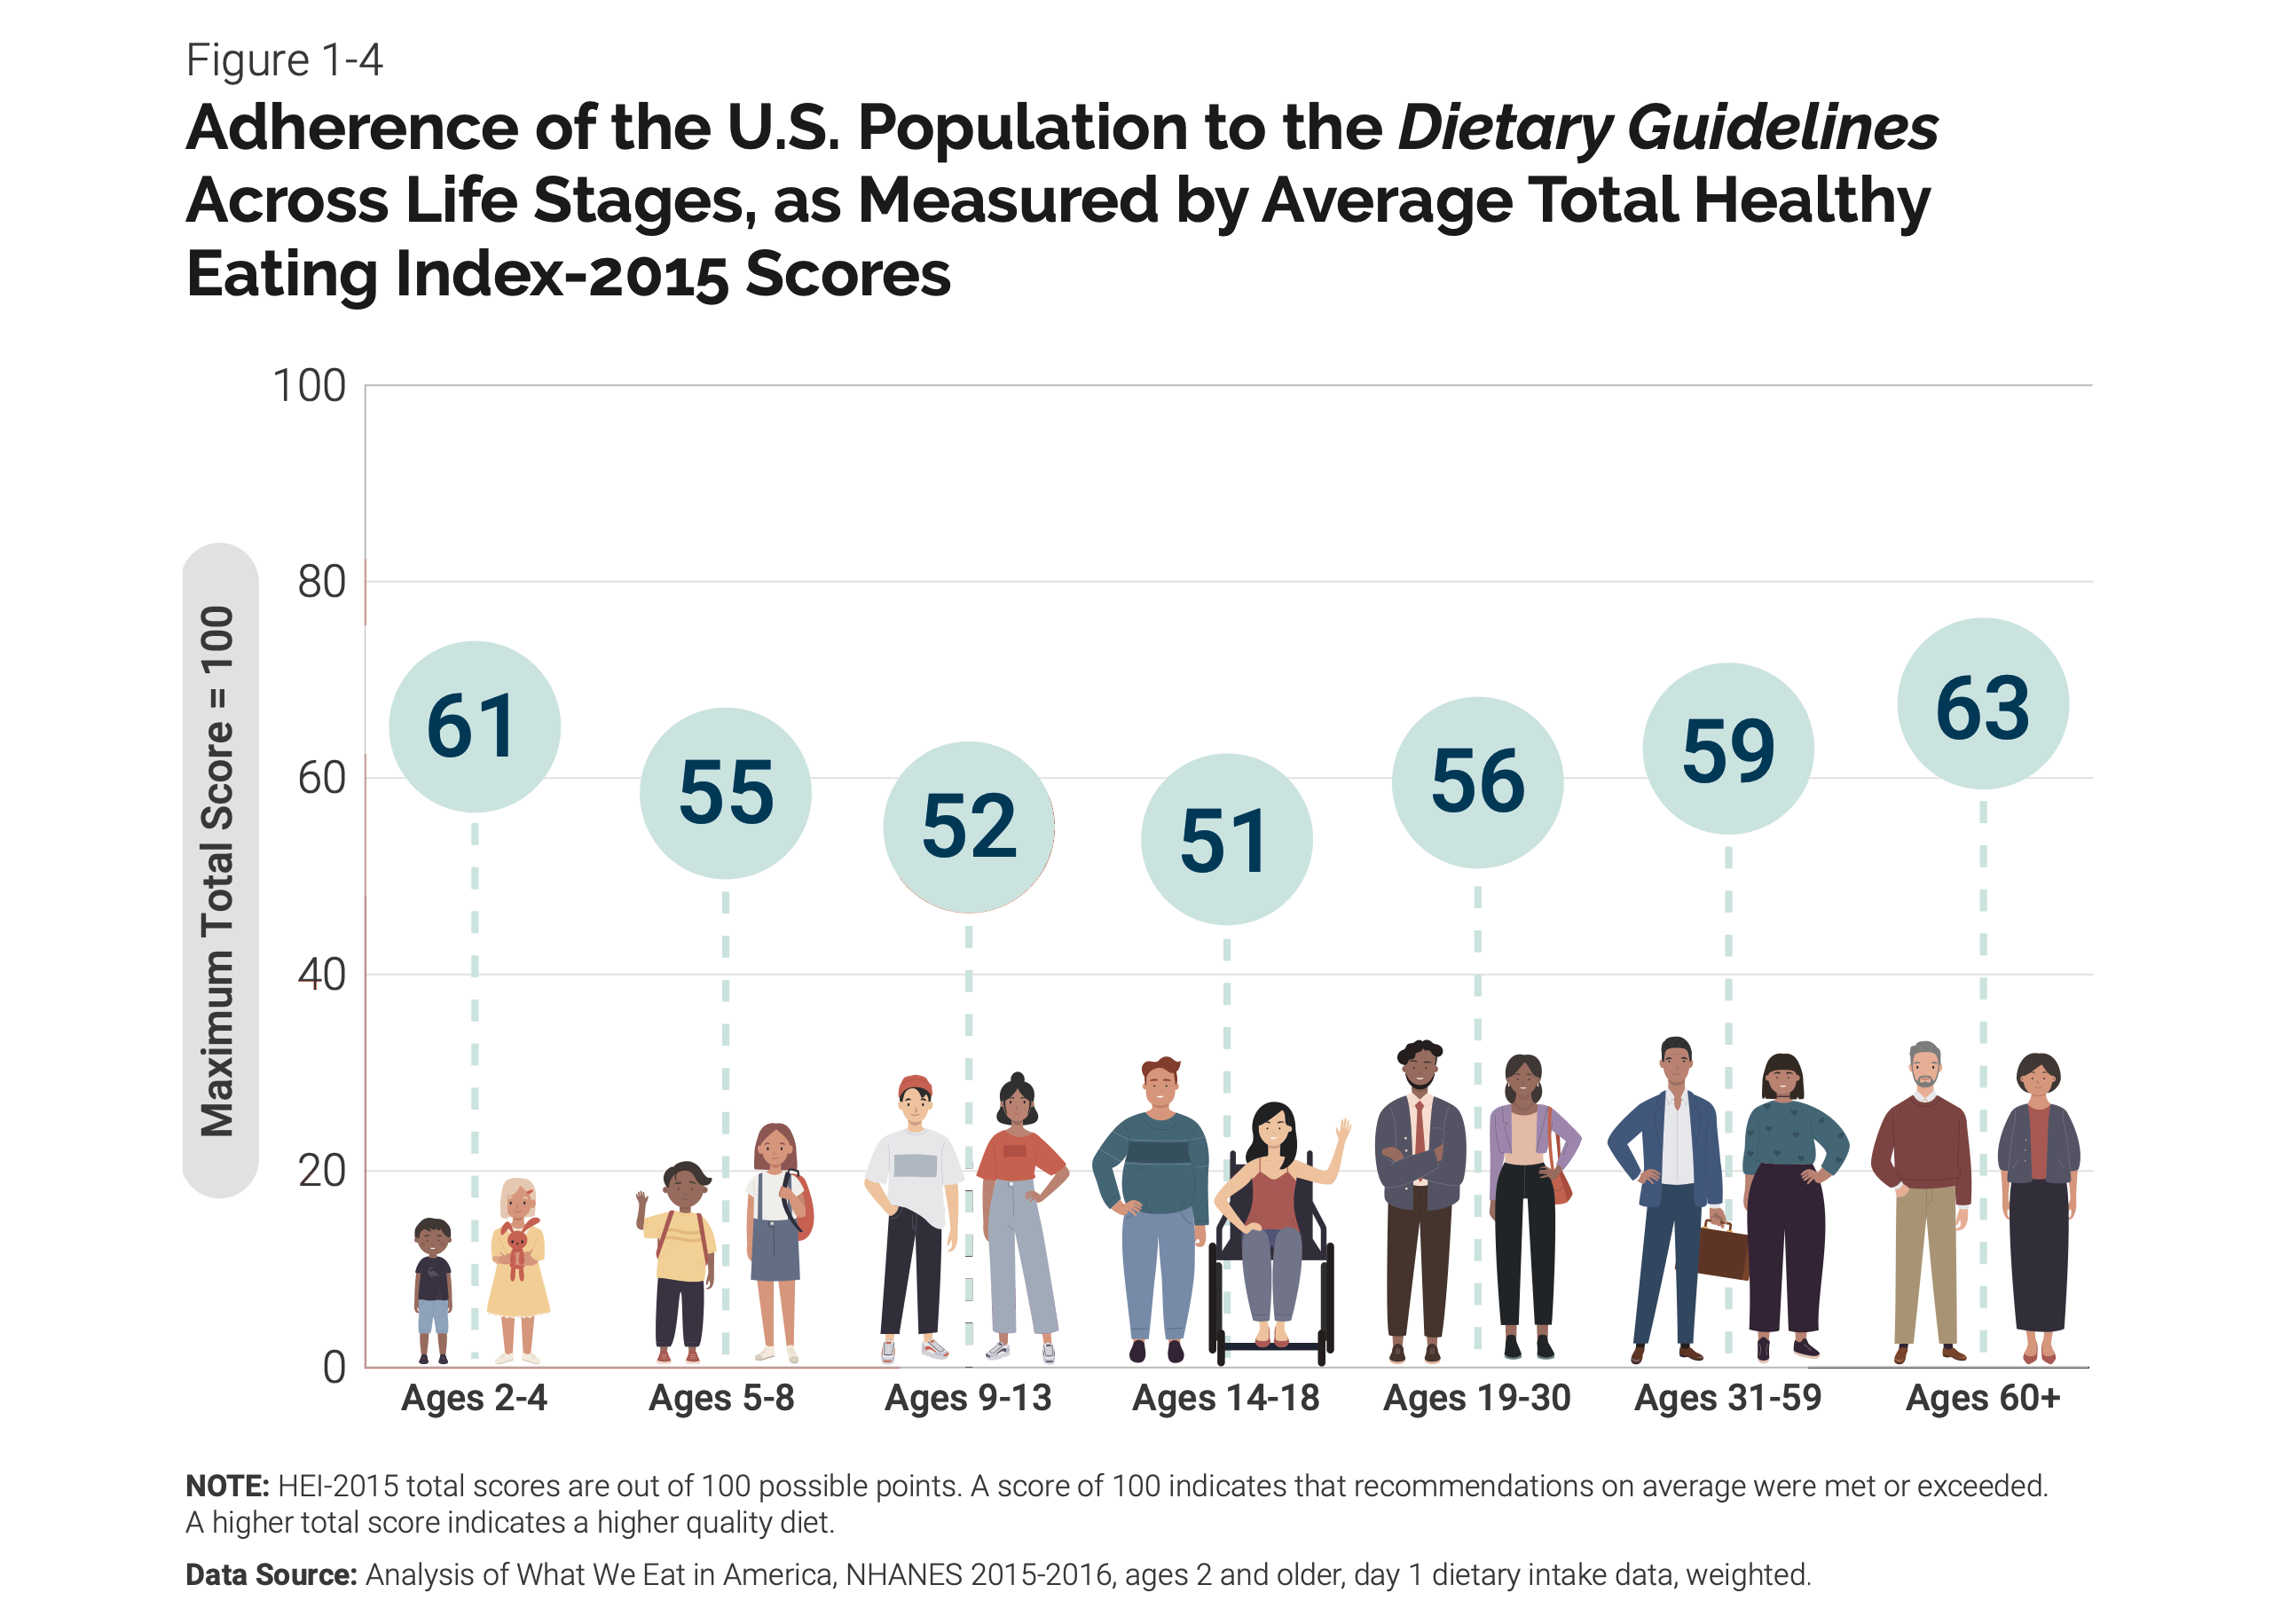 Population age groups are shown along with their average Healthy Eating Index-2015 scores. The age groups and associated scores out of 100 are as follows: Ages 2 through 4 score 61 on average, Ages 5 through 8 score 55, Ages 9 through 13 score 52, Ages 14 through 18 score 51, Ages 19 through 30 score 56, Ages 31 through 59 score 59, and Ages 60+ score 63.